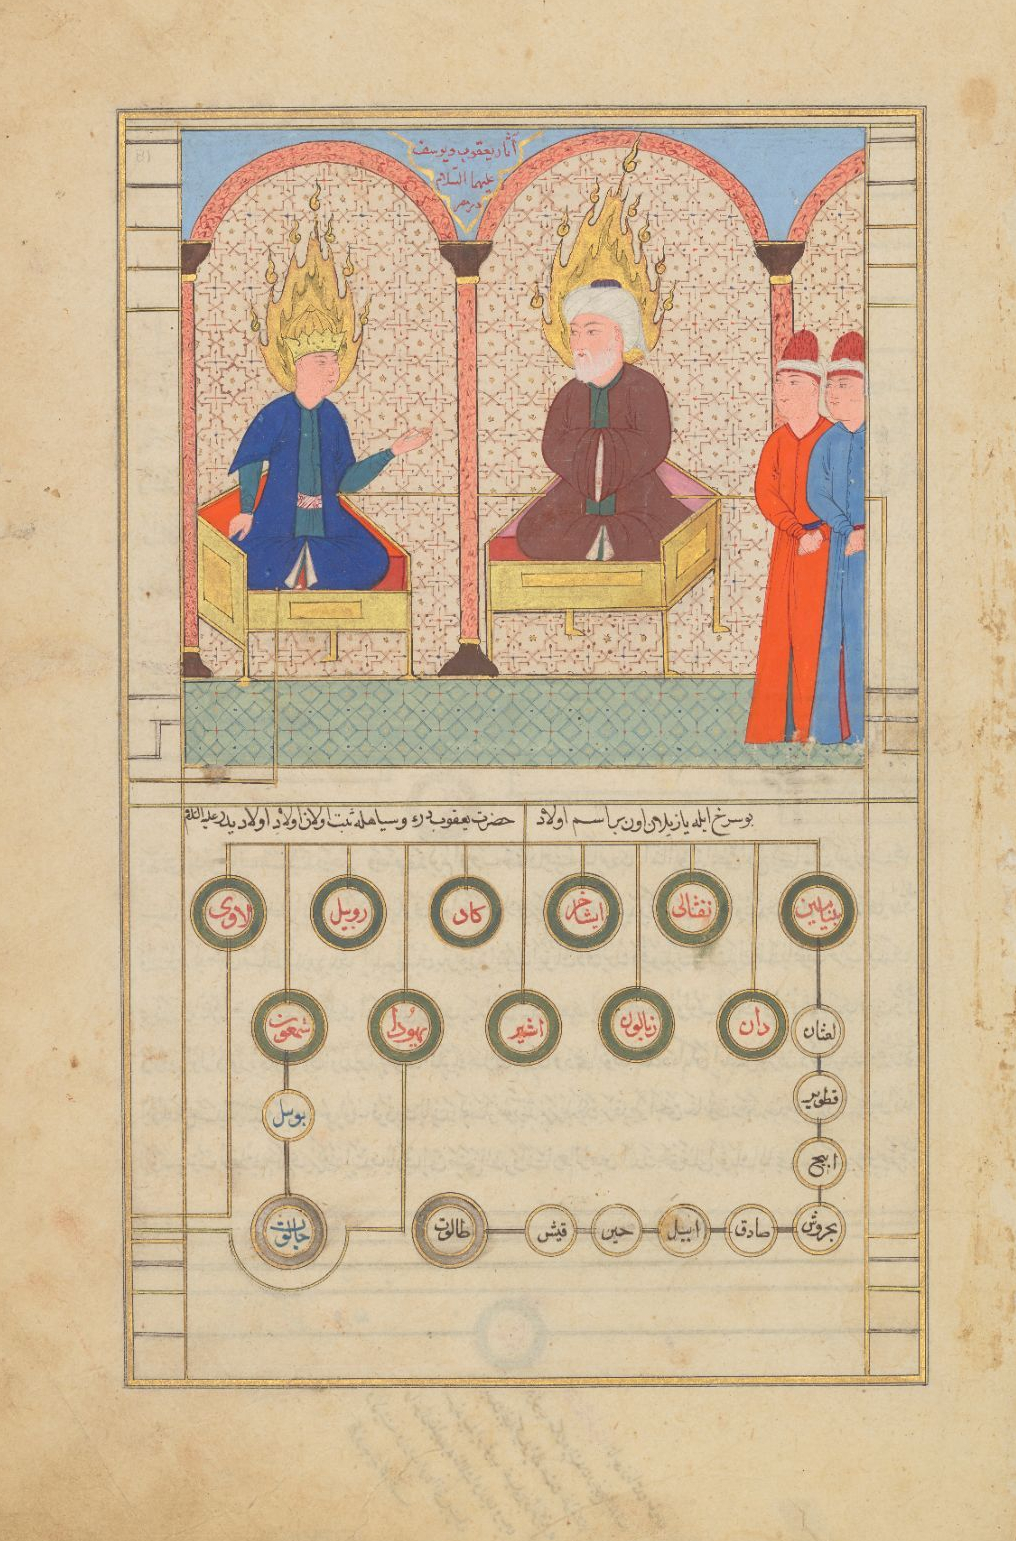 The Prophets Ya'qub (Jacob) and Yusuf (Joseph) seated together, from The Cream of Histories (Zubdat al-tawarikh) by Sayyid Luqman-i 'Ashuri